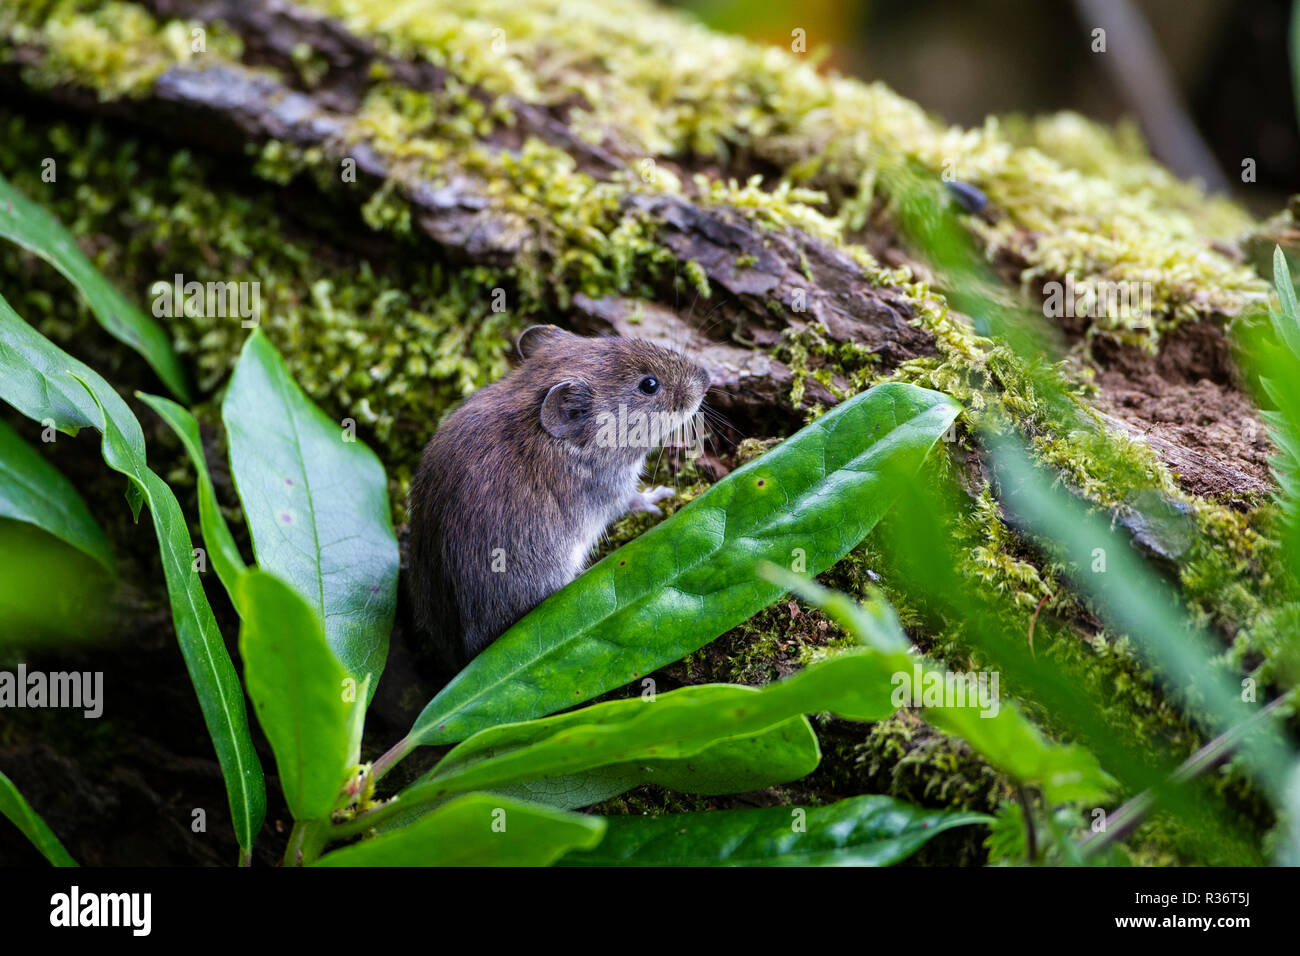 Cheeky bank vole Myodes glareolus peeping out of greenery adjacent to a moss covered log - Stock Image